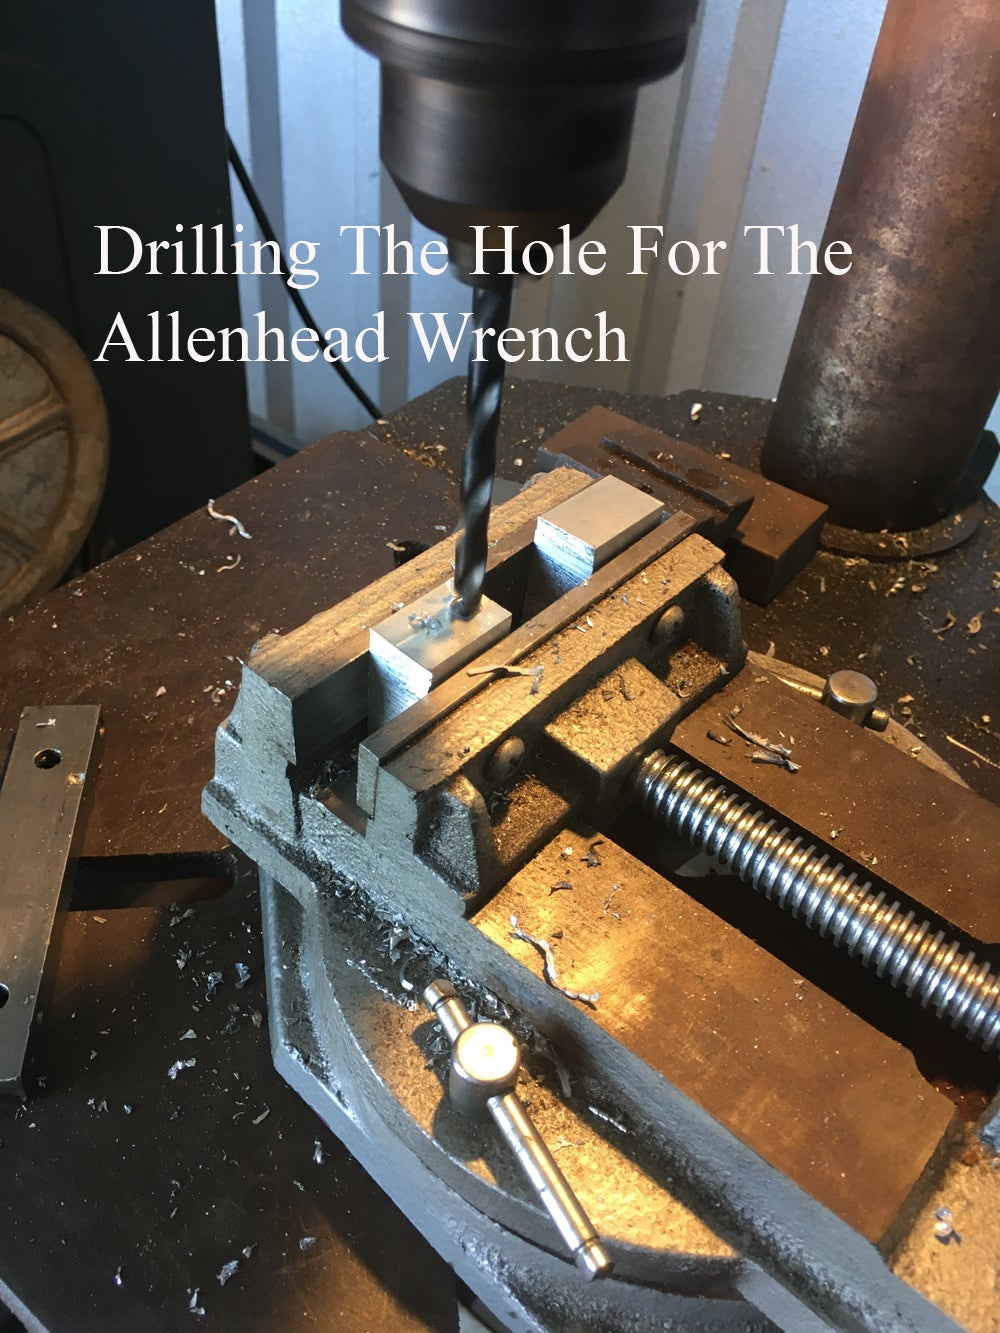 Drilling the Holes in the Tool Holder